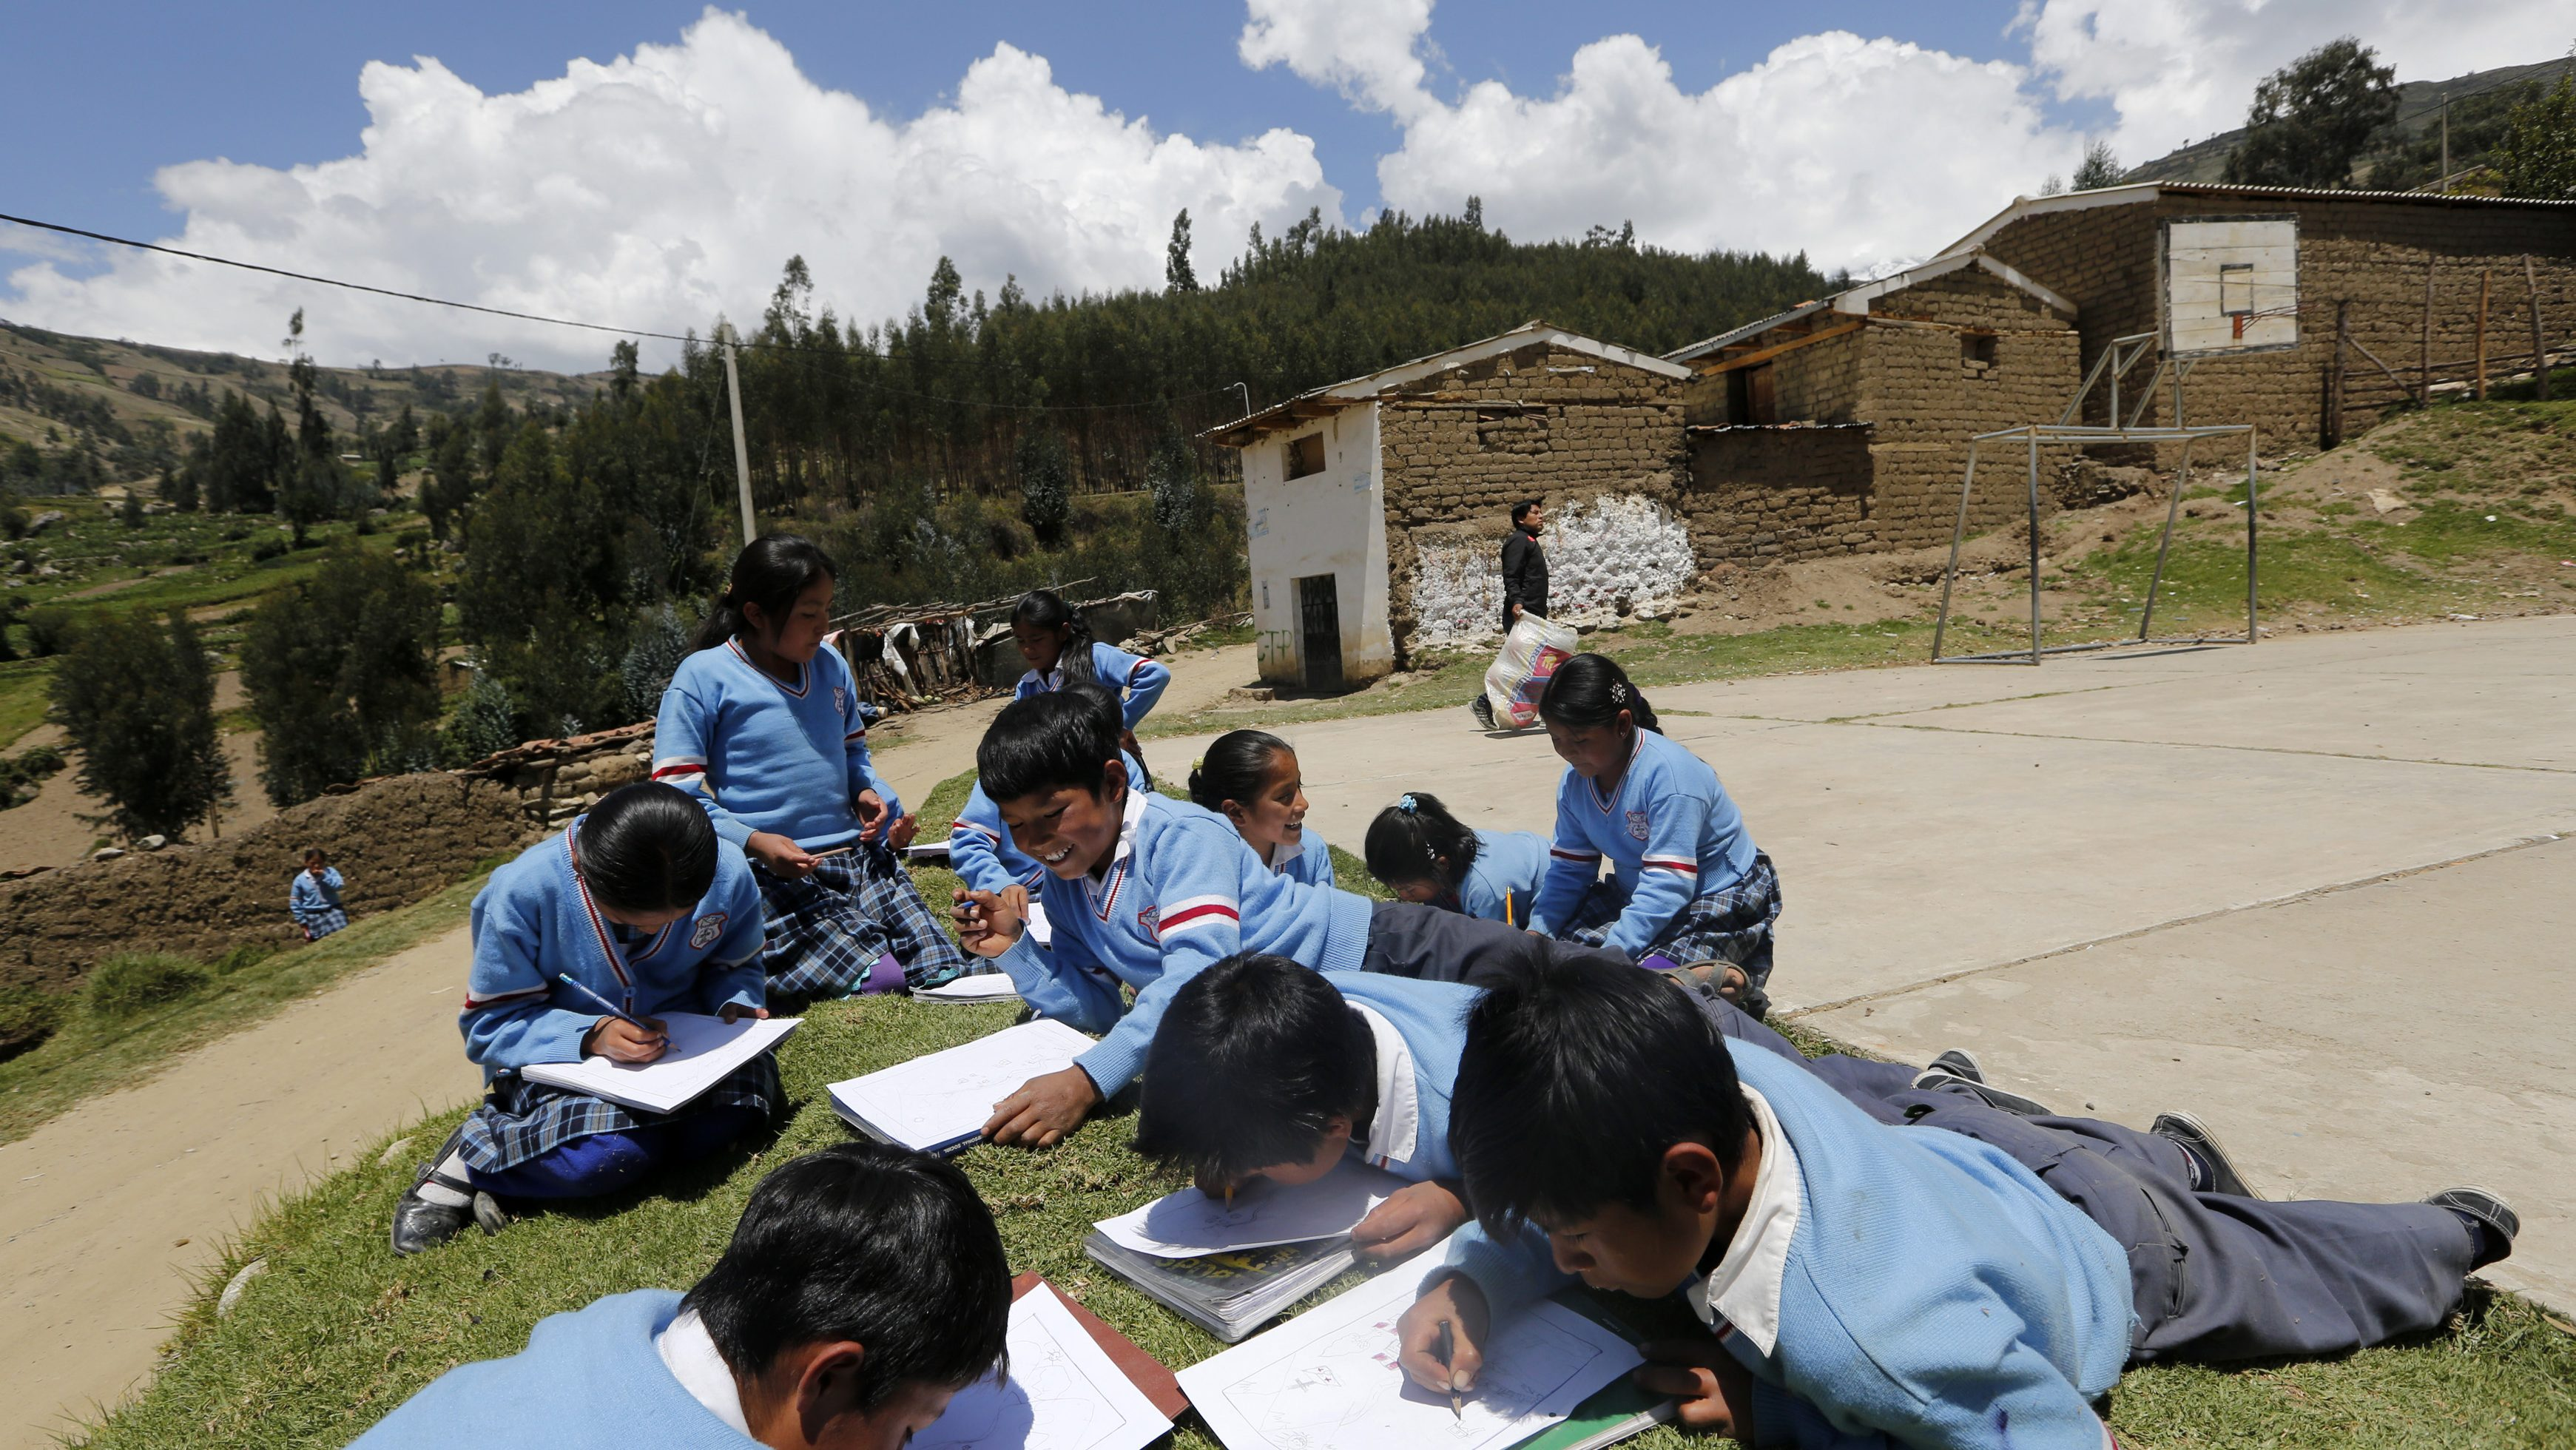 Students draw in a garden in Peru